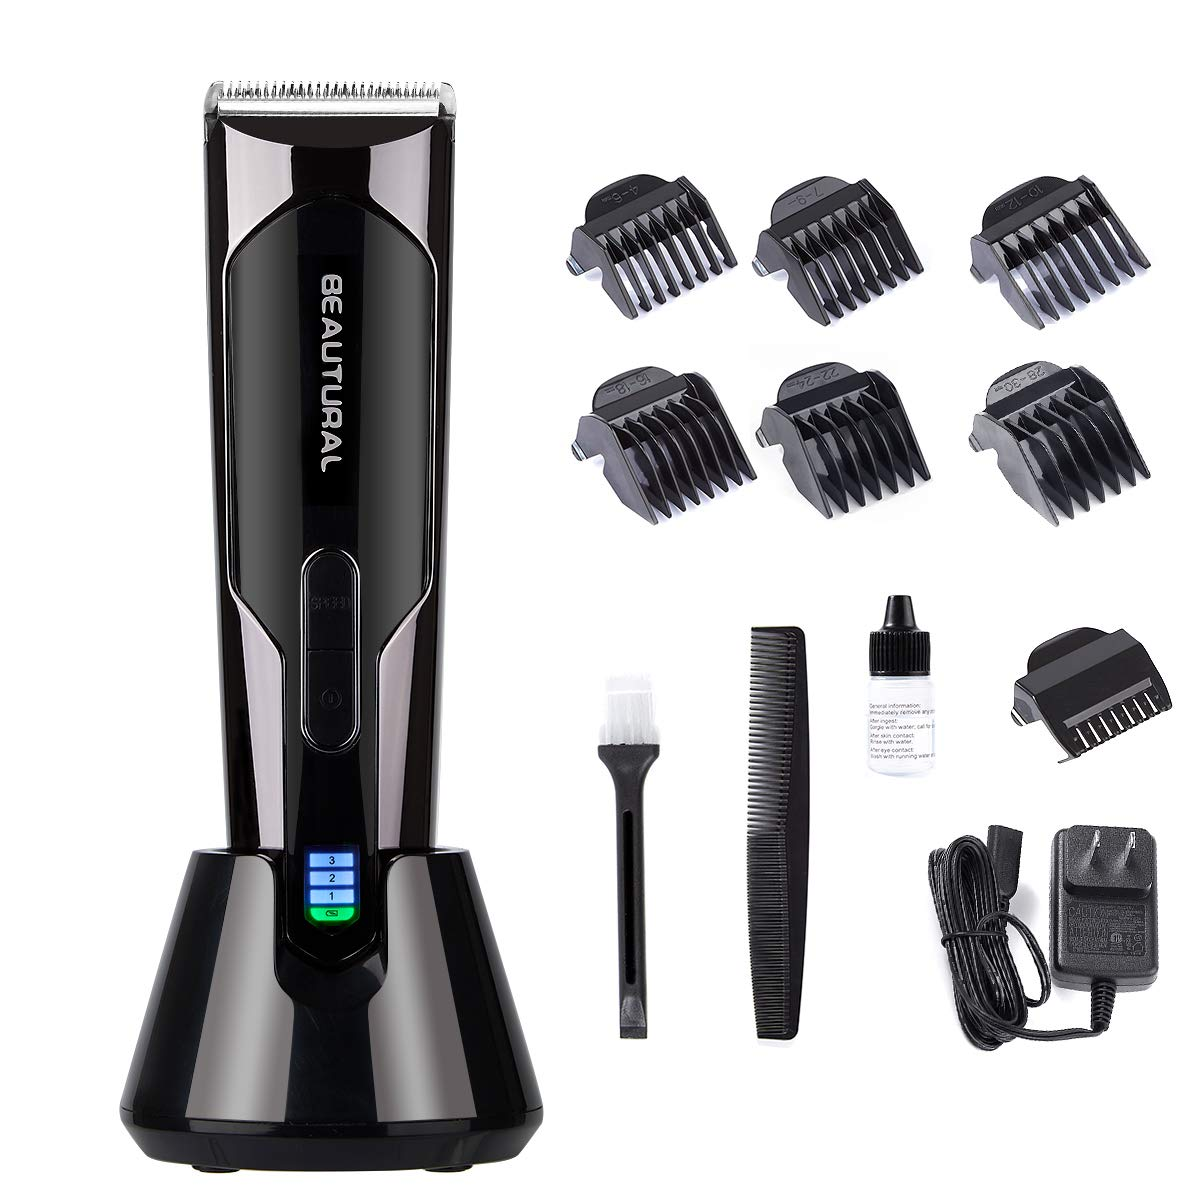 Beautural Professional Hair Clippers, Heavy Duty Cordless and Rechargeable Hair Trimmer and Hair Cutting Kit with Charging Base, 6 Guide Combs, and Comb